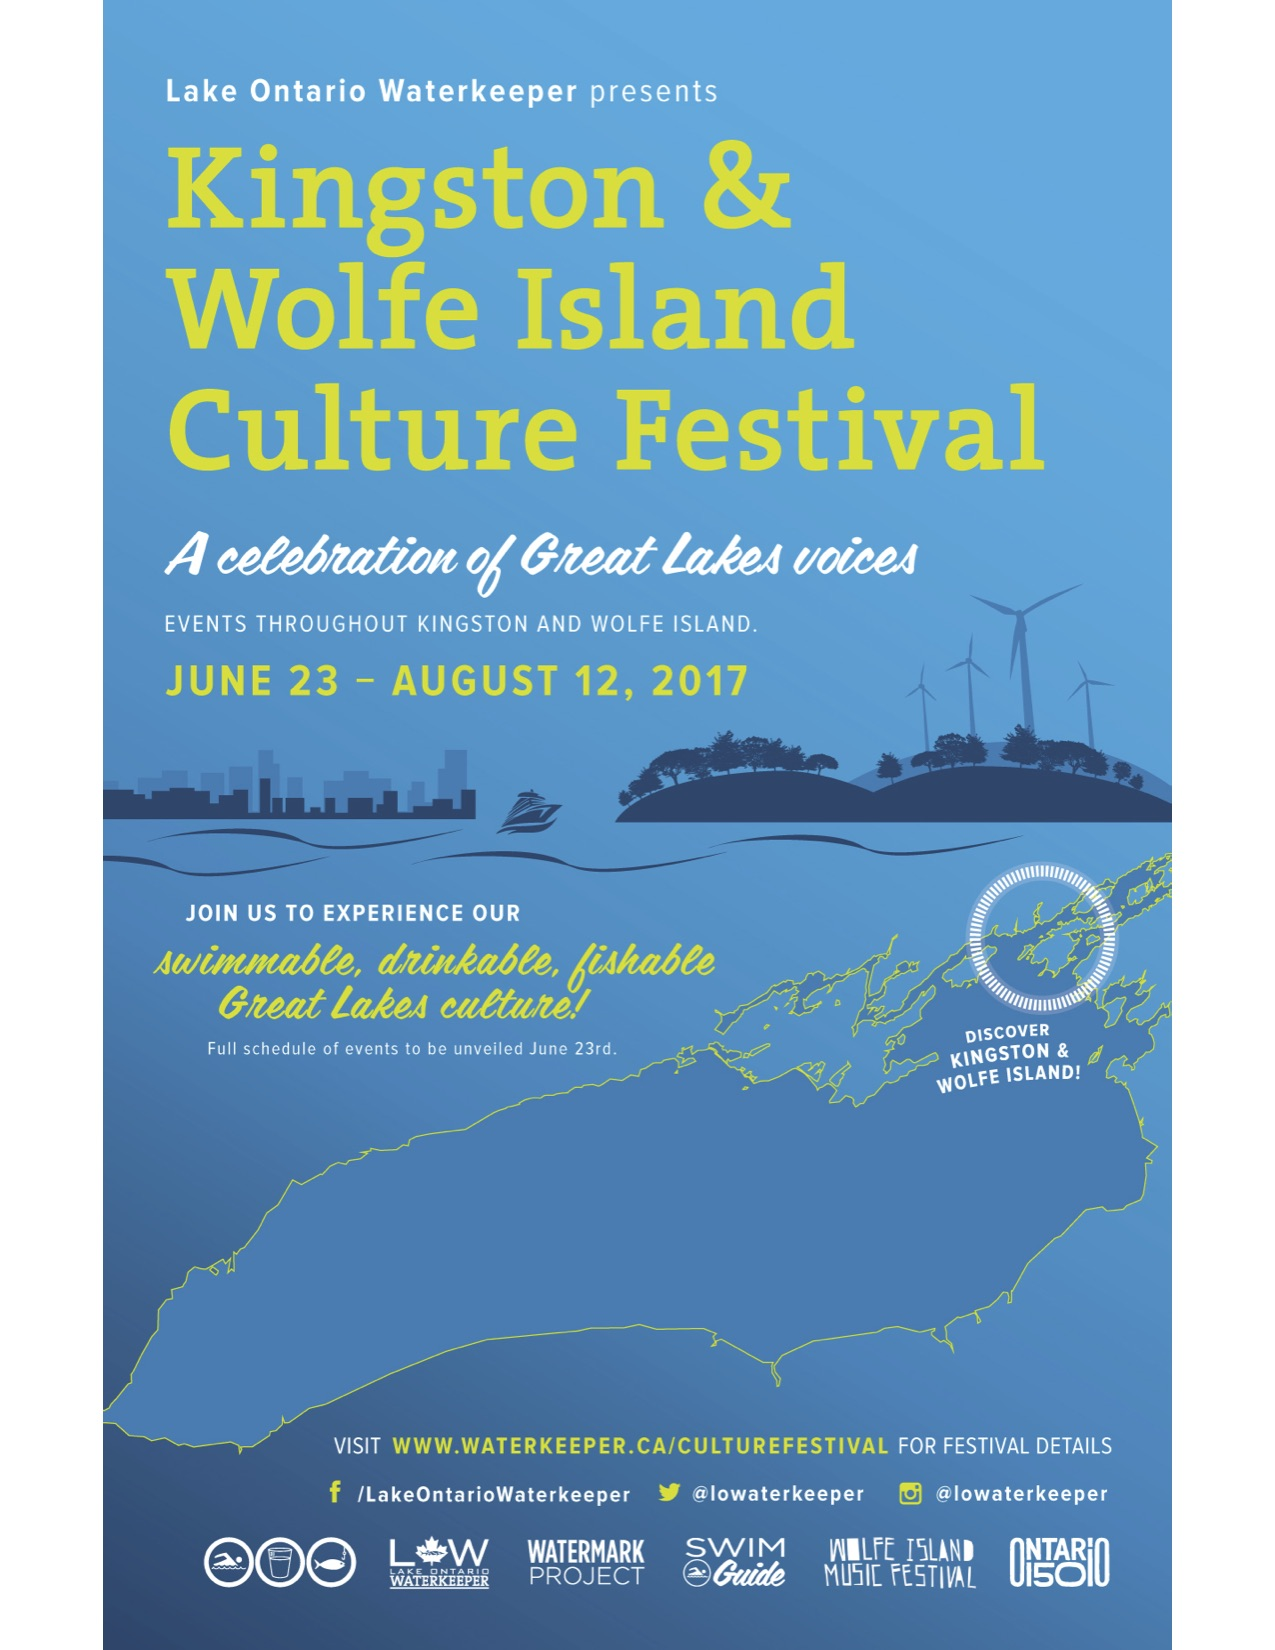 kingston-and-wolfe-island-culture-poster_36190722420_o.jpg